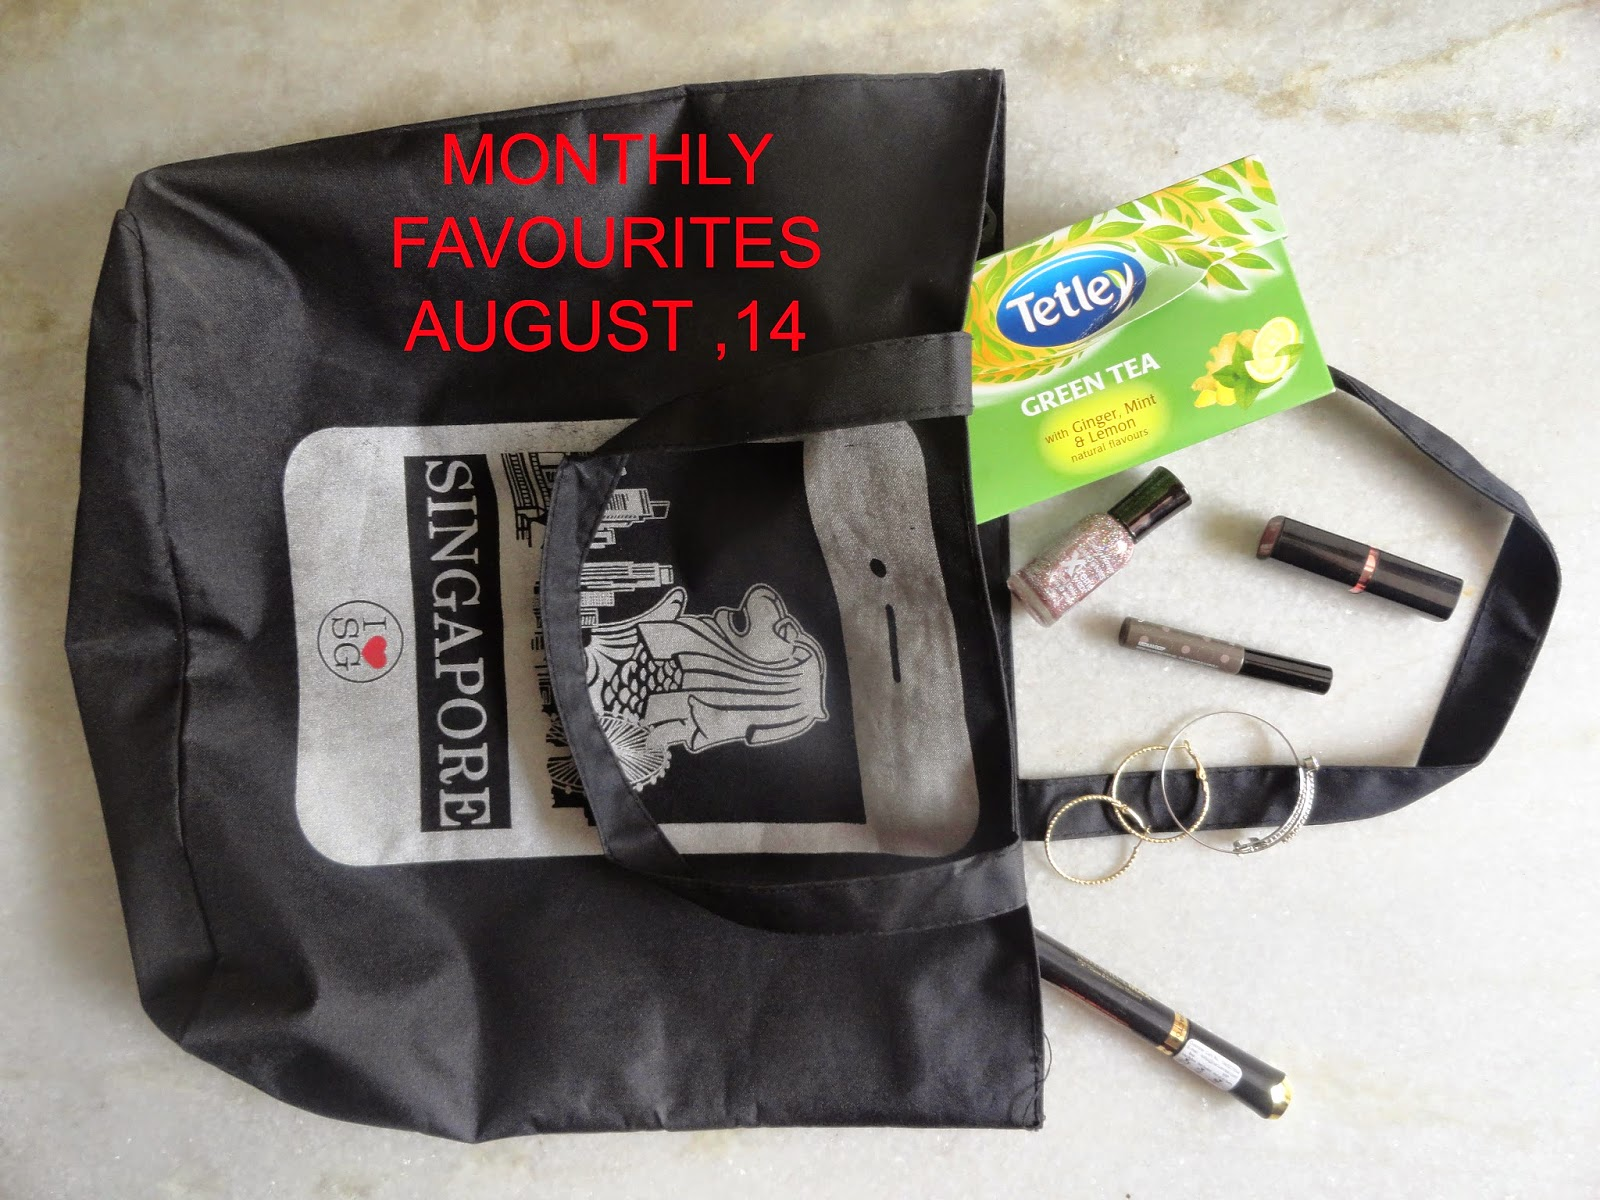 Monthly favourites: August 2014 image